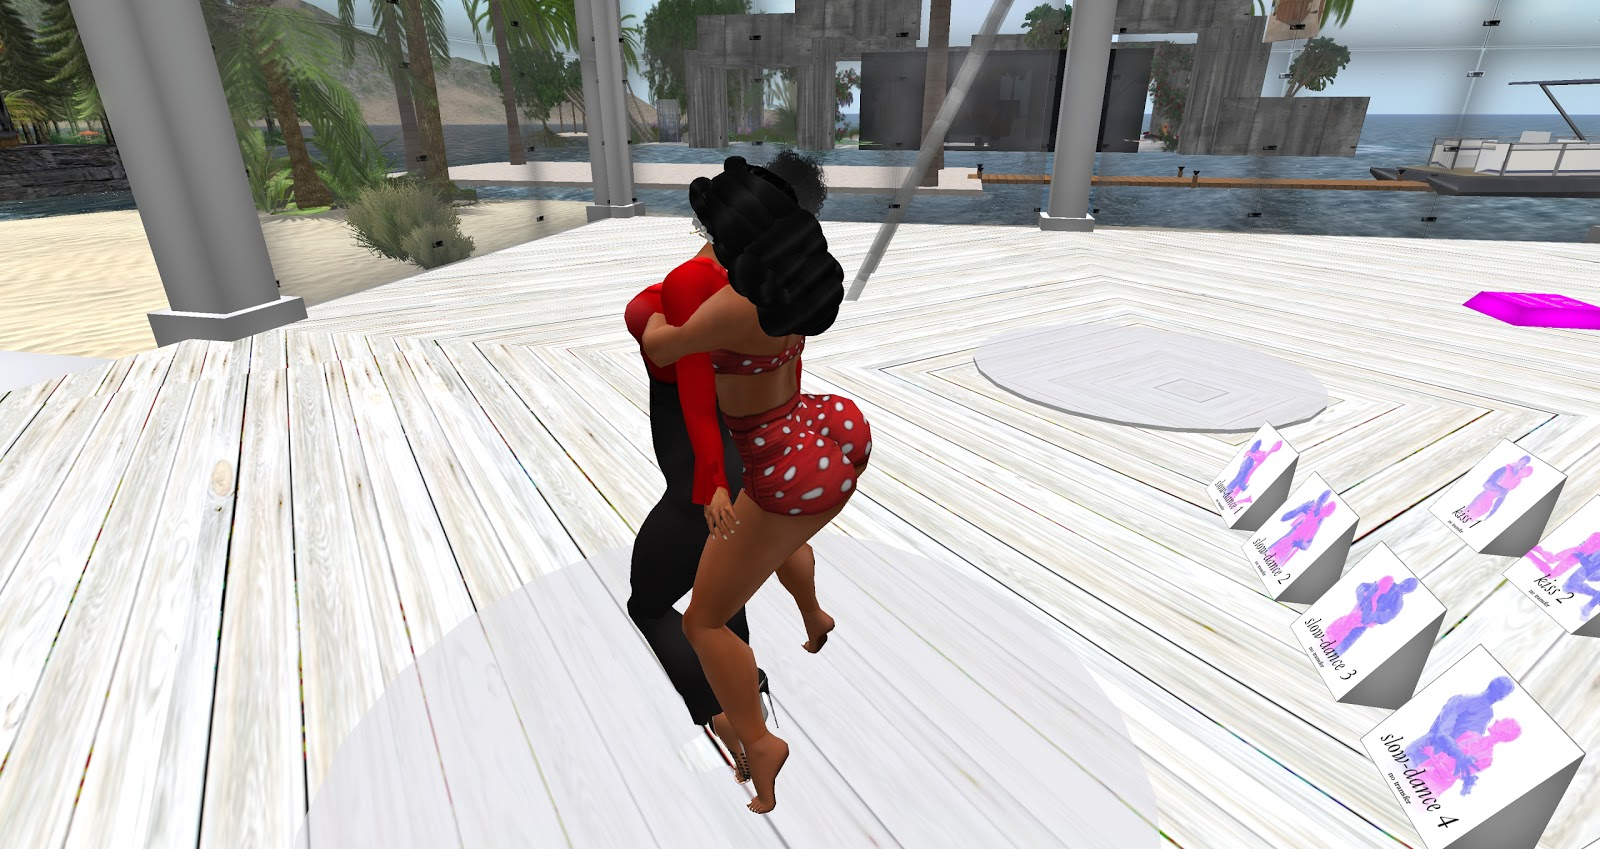 chey s second life blog butt culture in second life